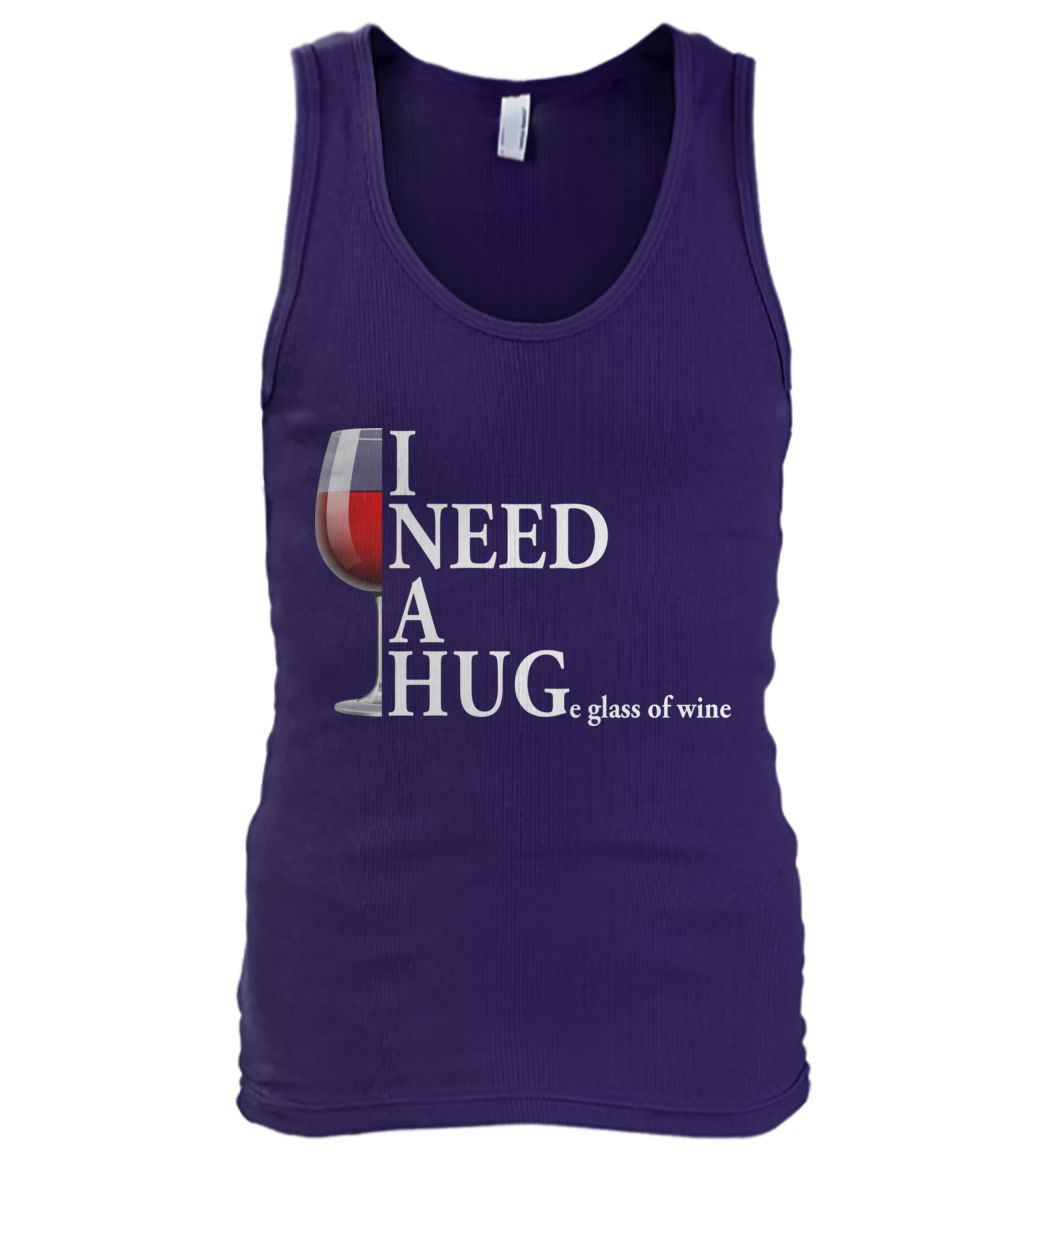 I need a huge glass of wine men's tank top